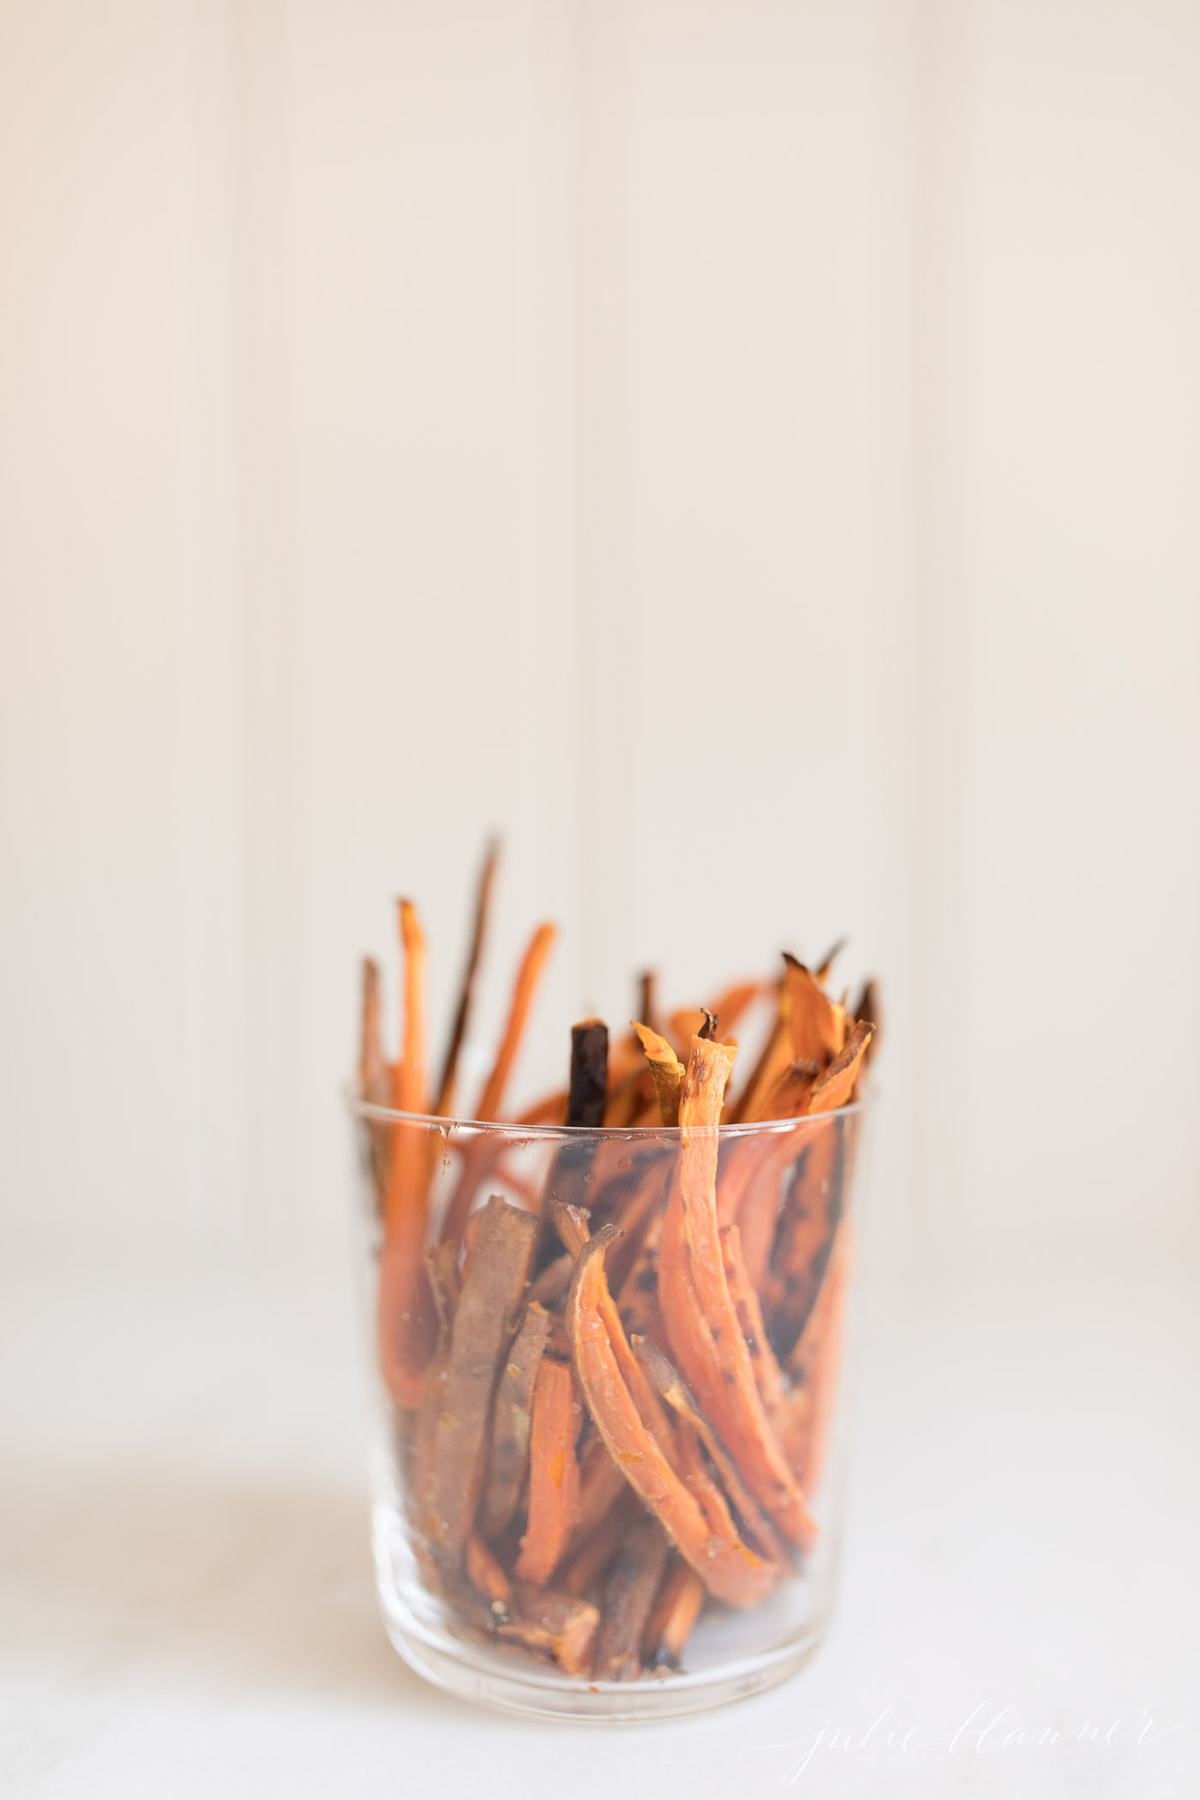 healthy sweet potato fries in a cup